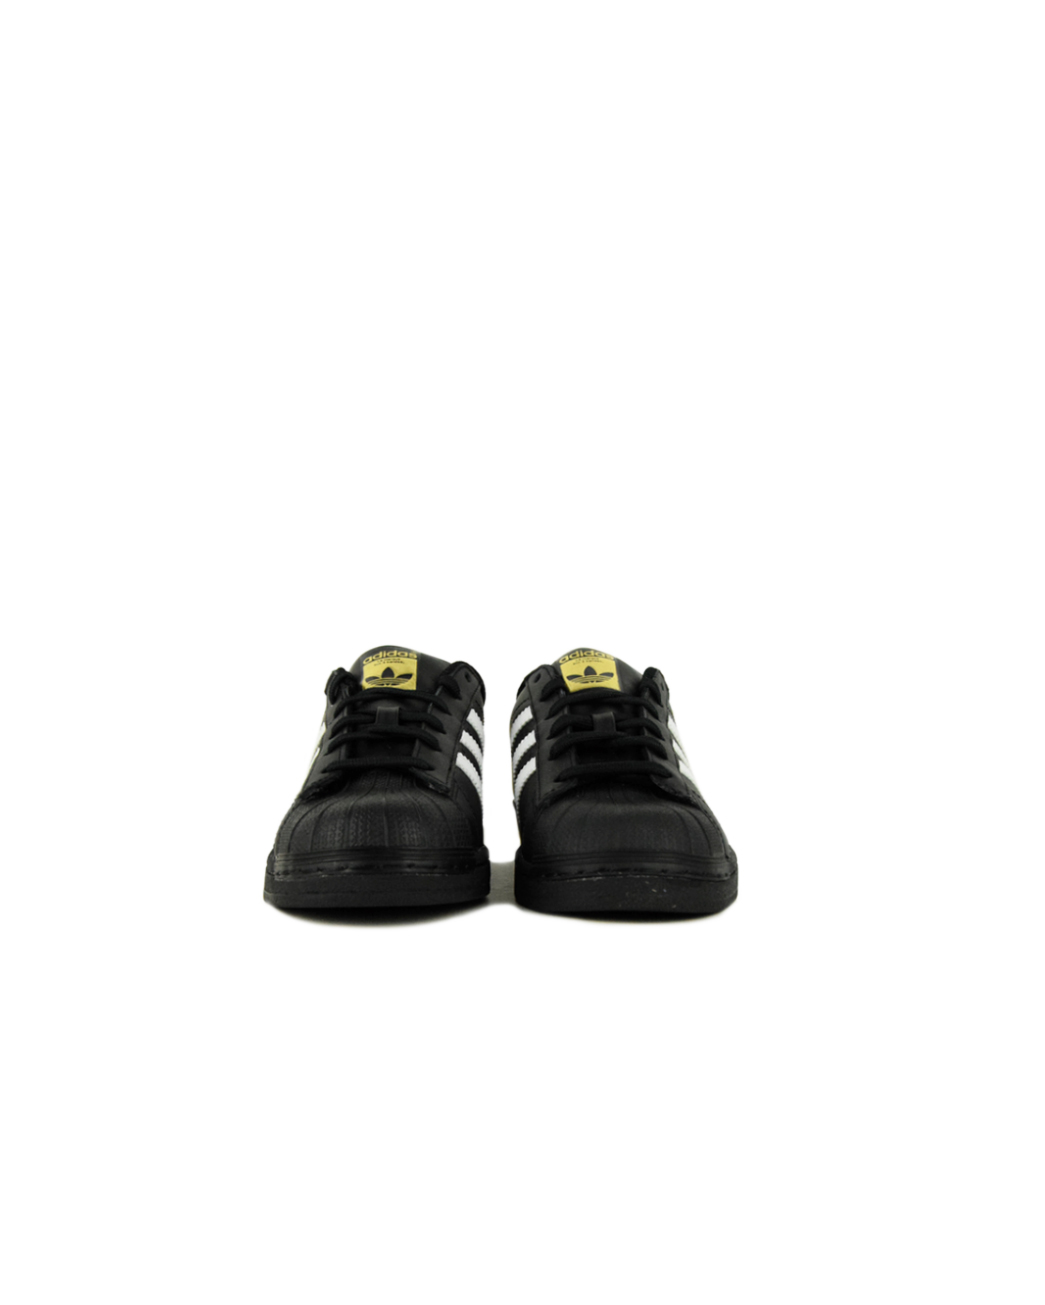 official photos e180f eb7a1 Adidas Superstar Foundation Black (B27140)